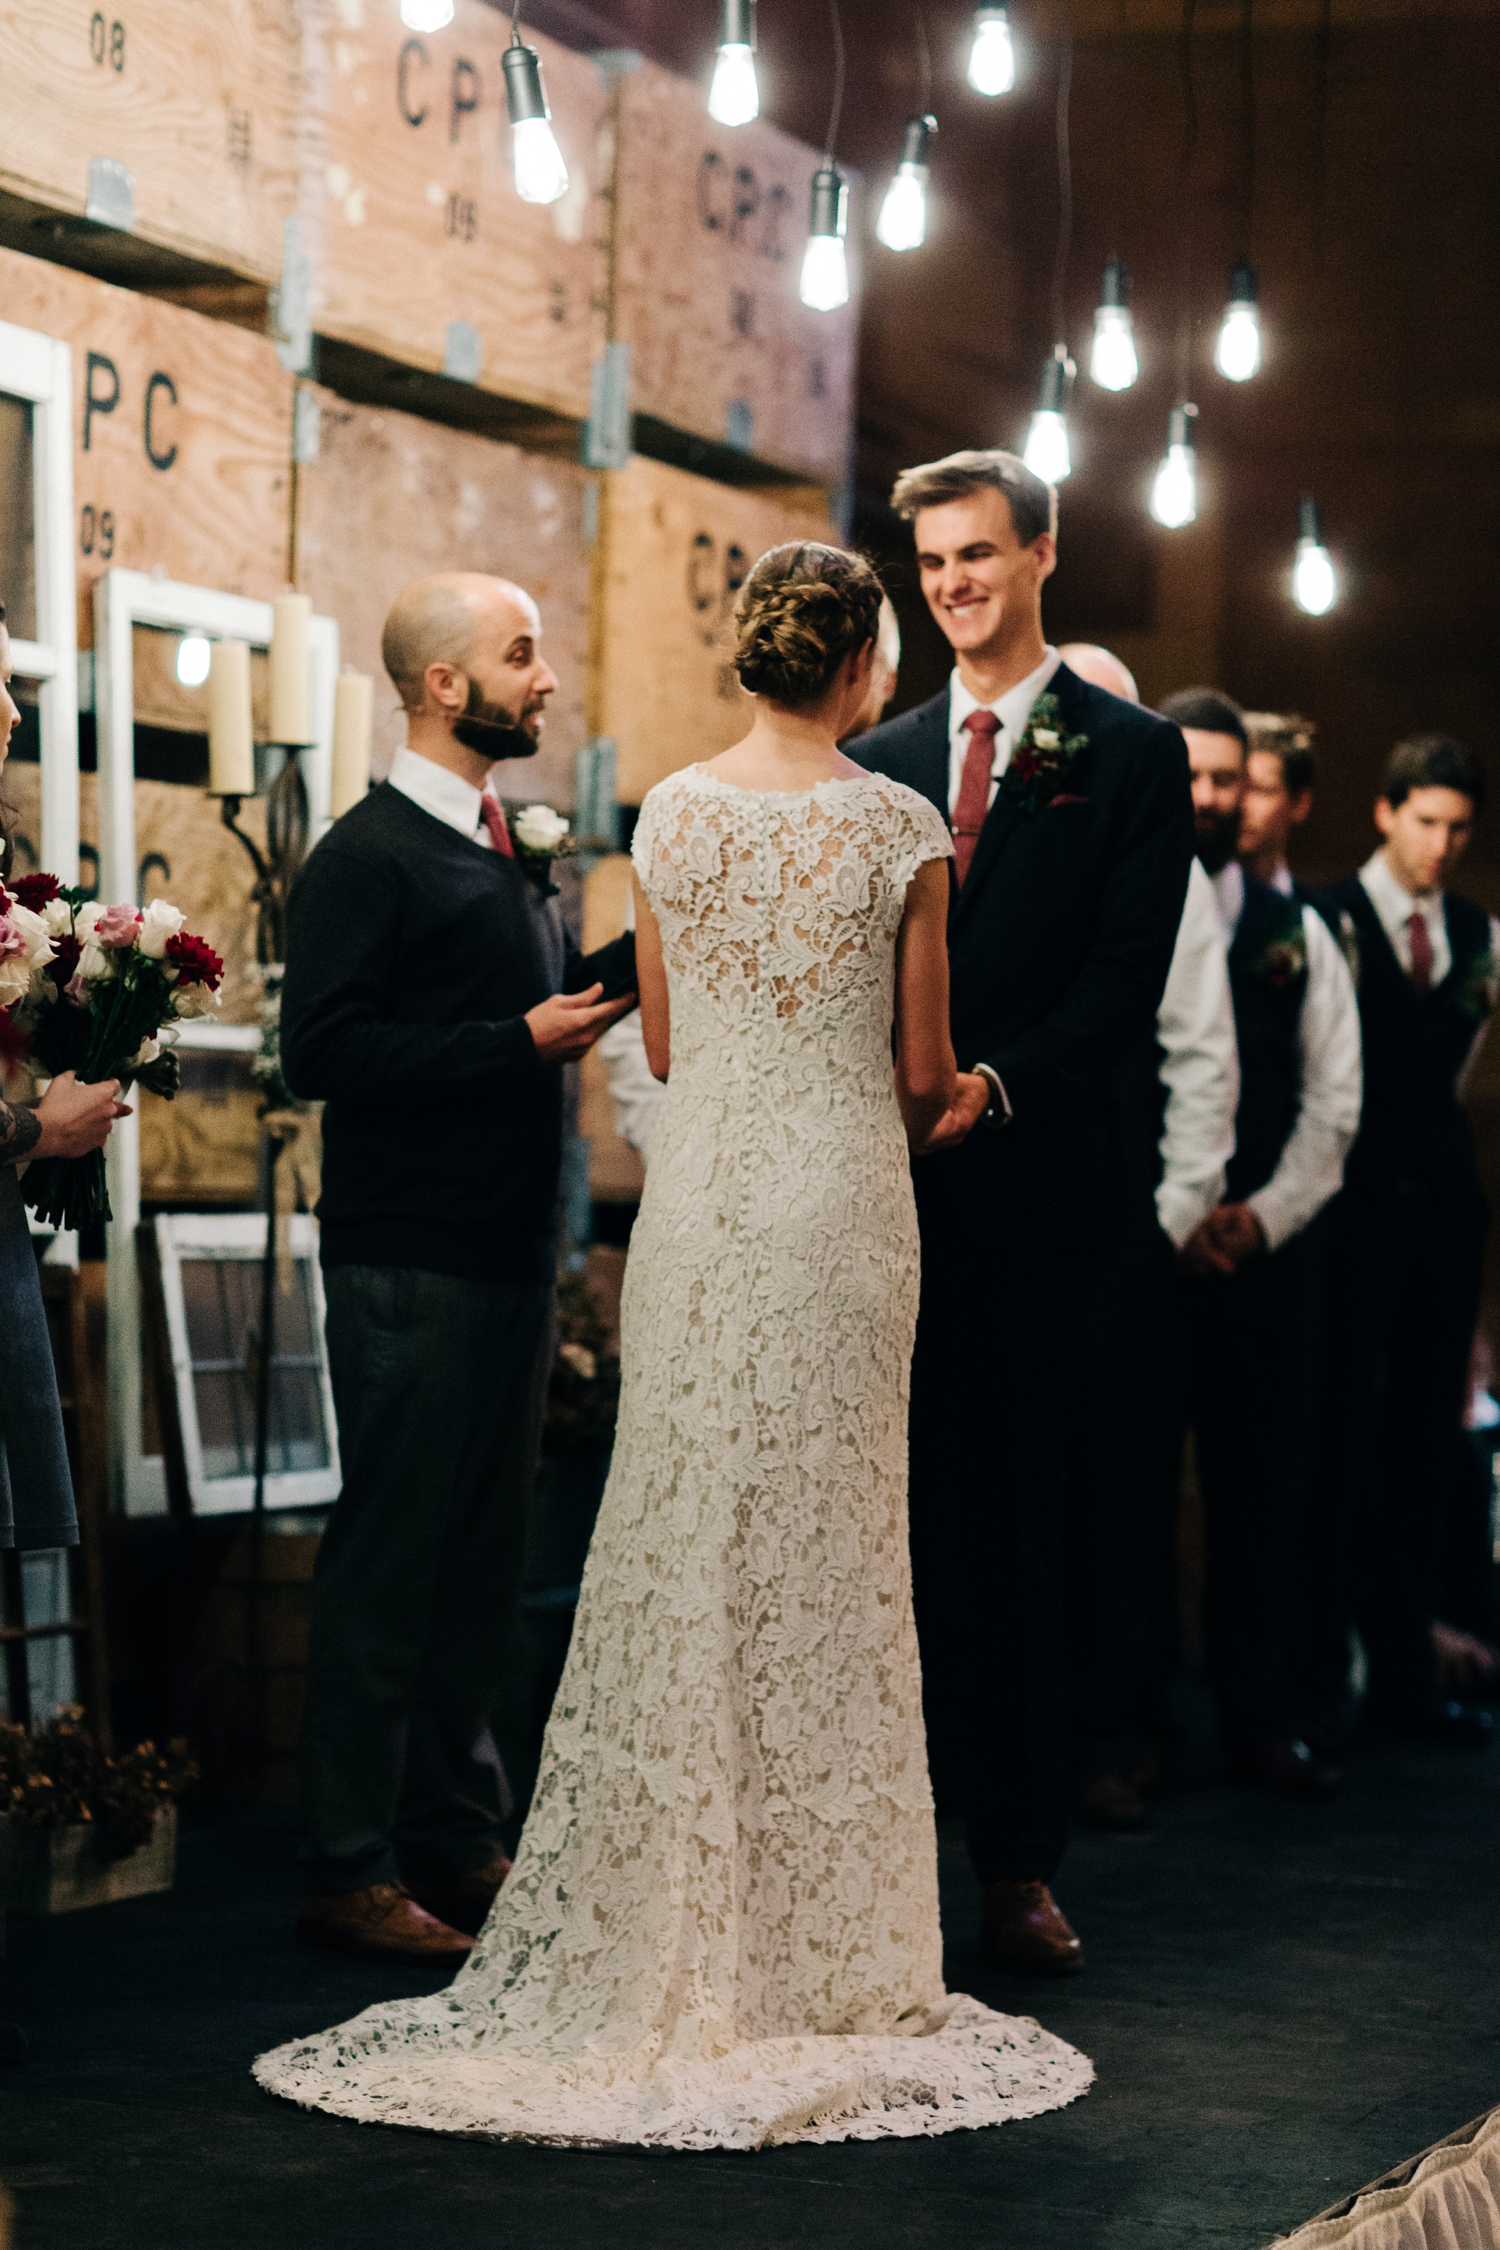 Mighty_Tieton_Yakima_Washington_Wedding_Photo_28.JPG